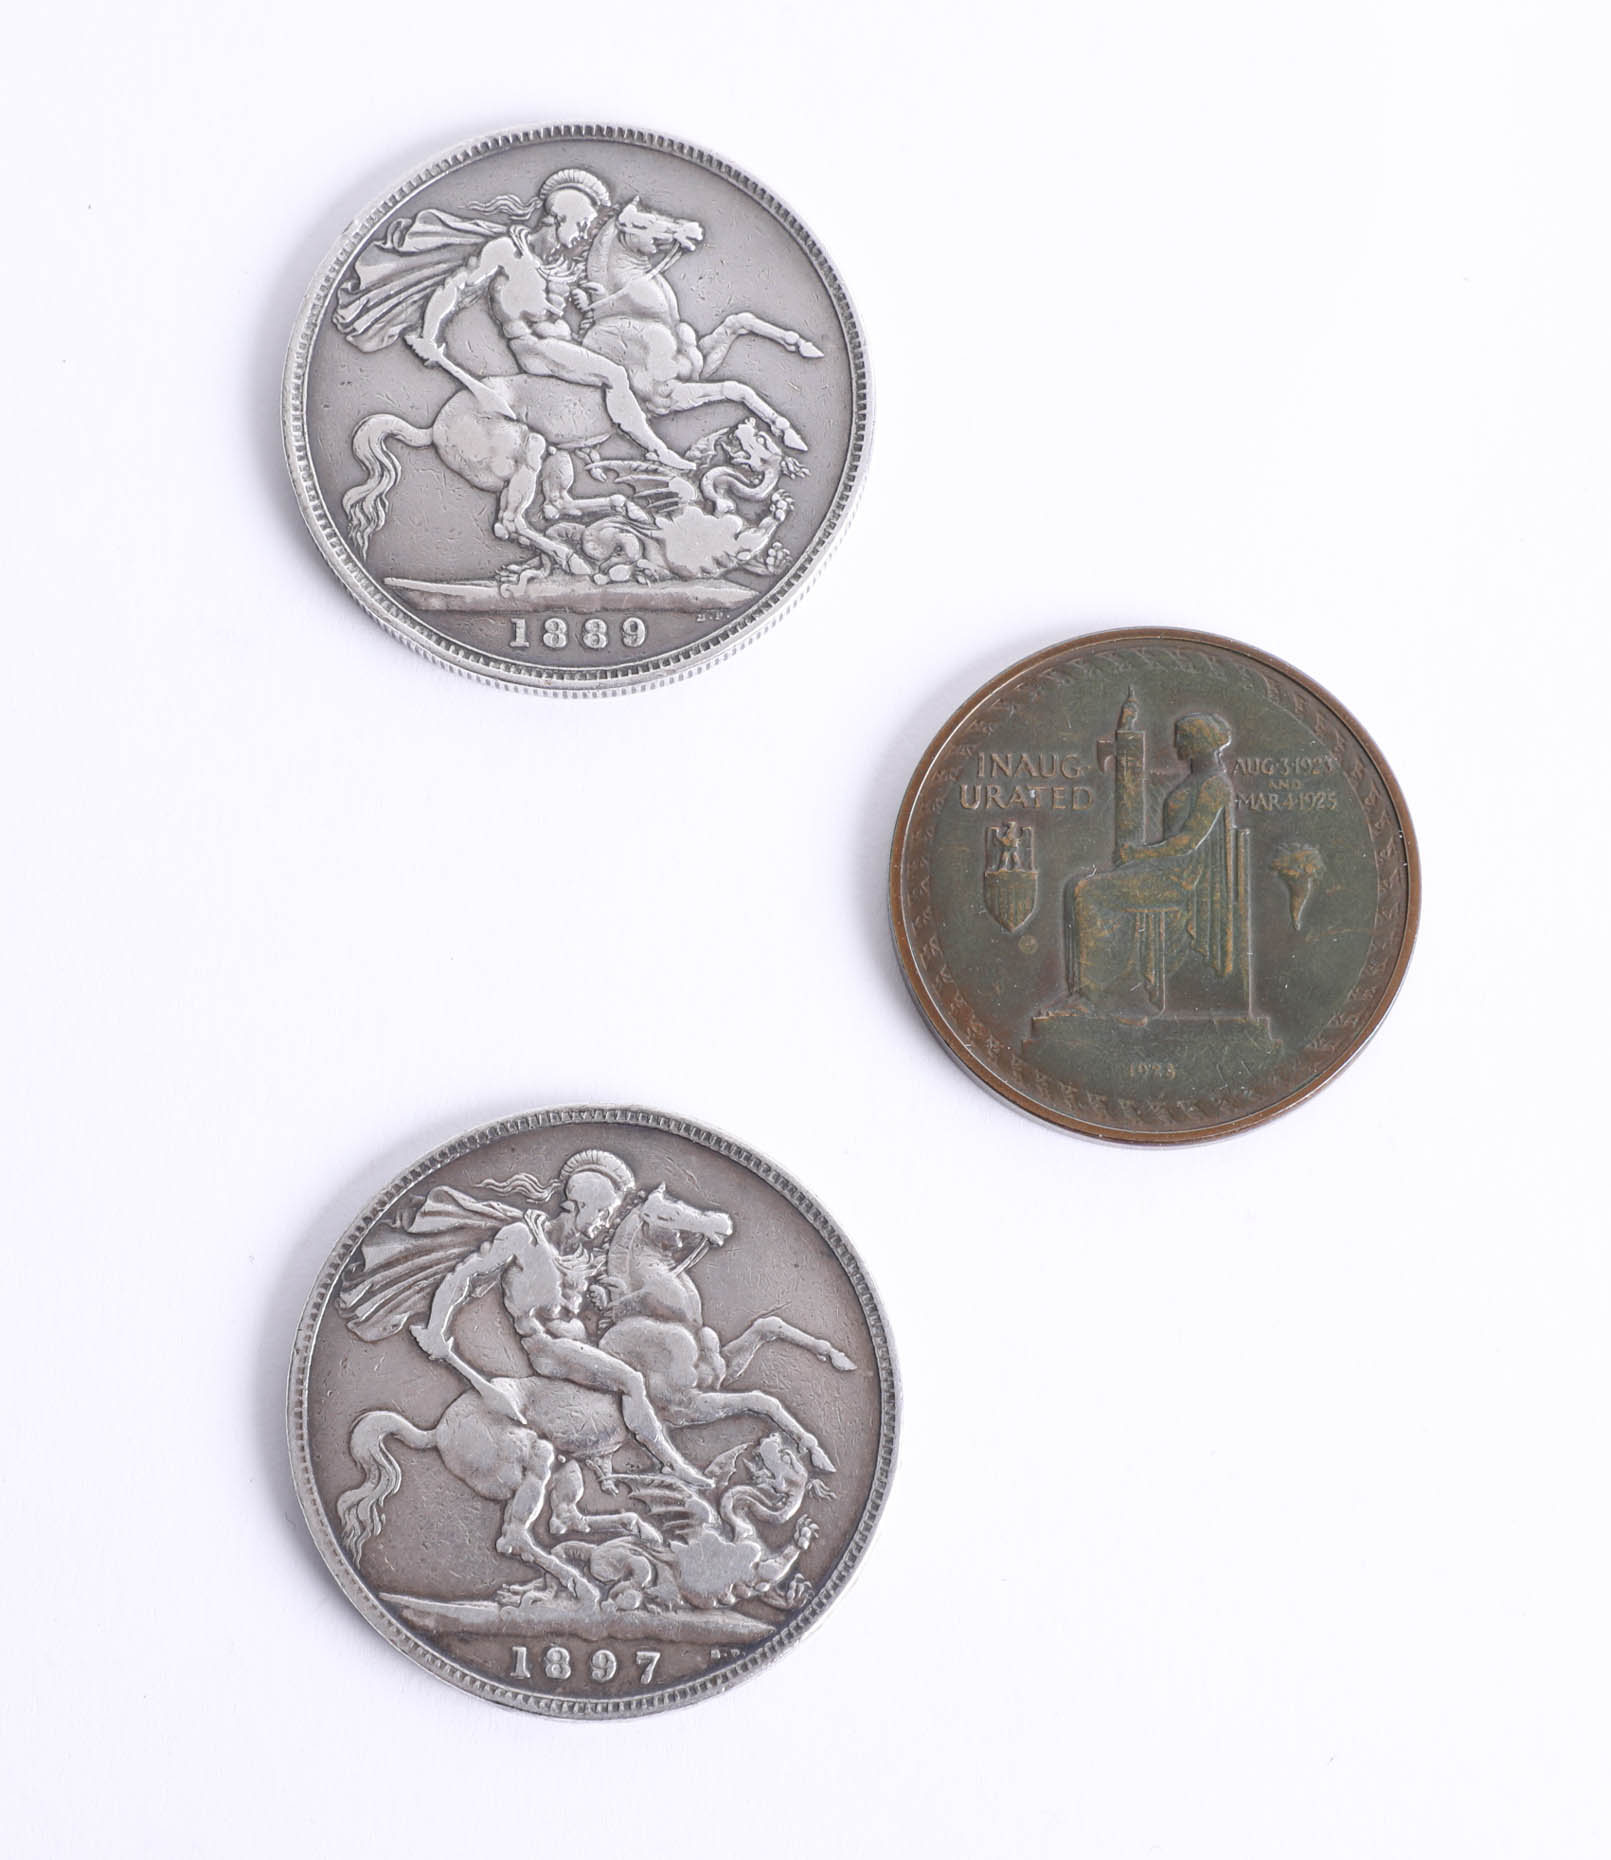 Lot 018 - Two Victorian silver crowns dated 1889 and 1897 together with a 1928 Calvin Coolidge coin (3).